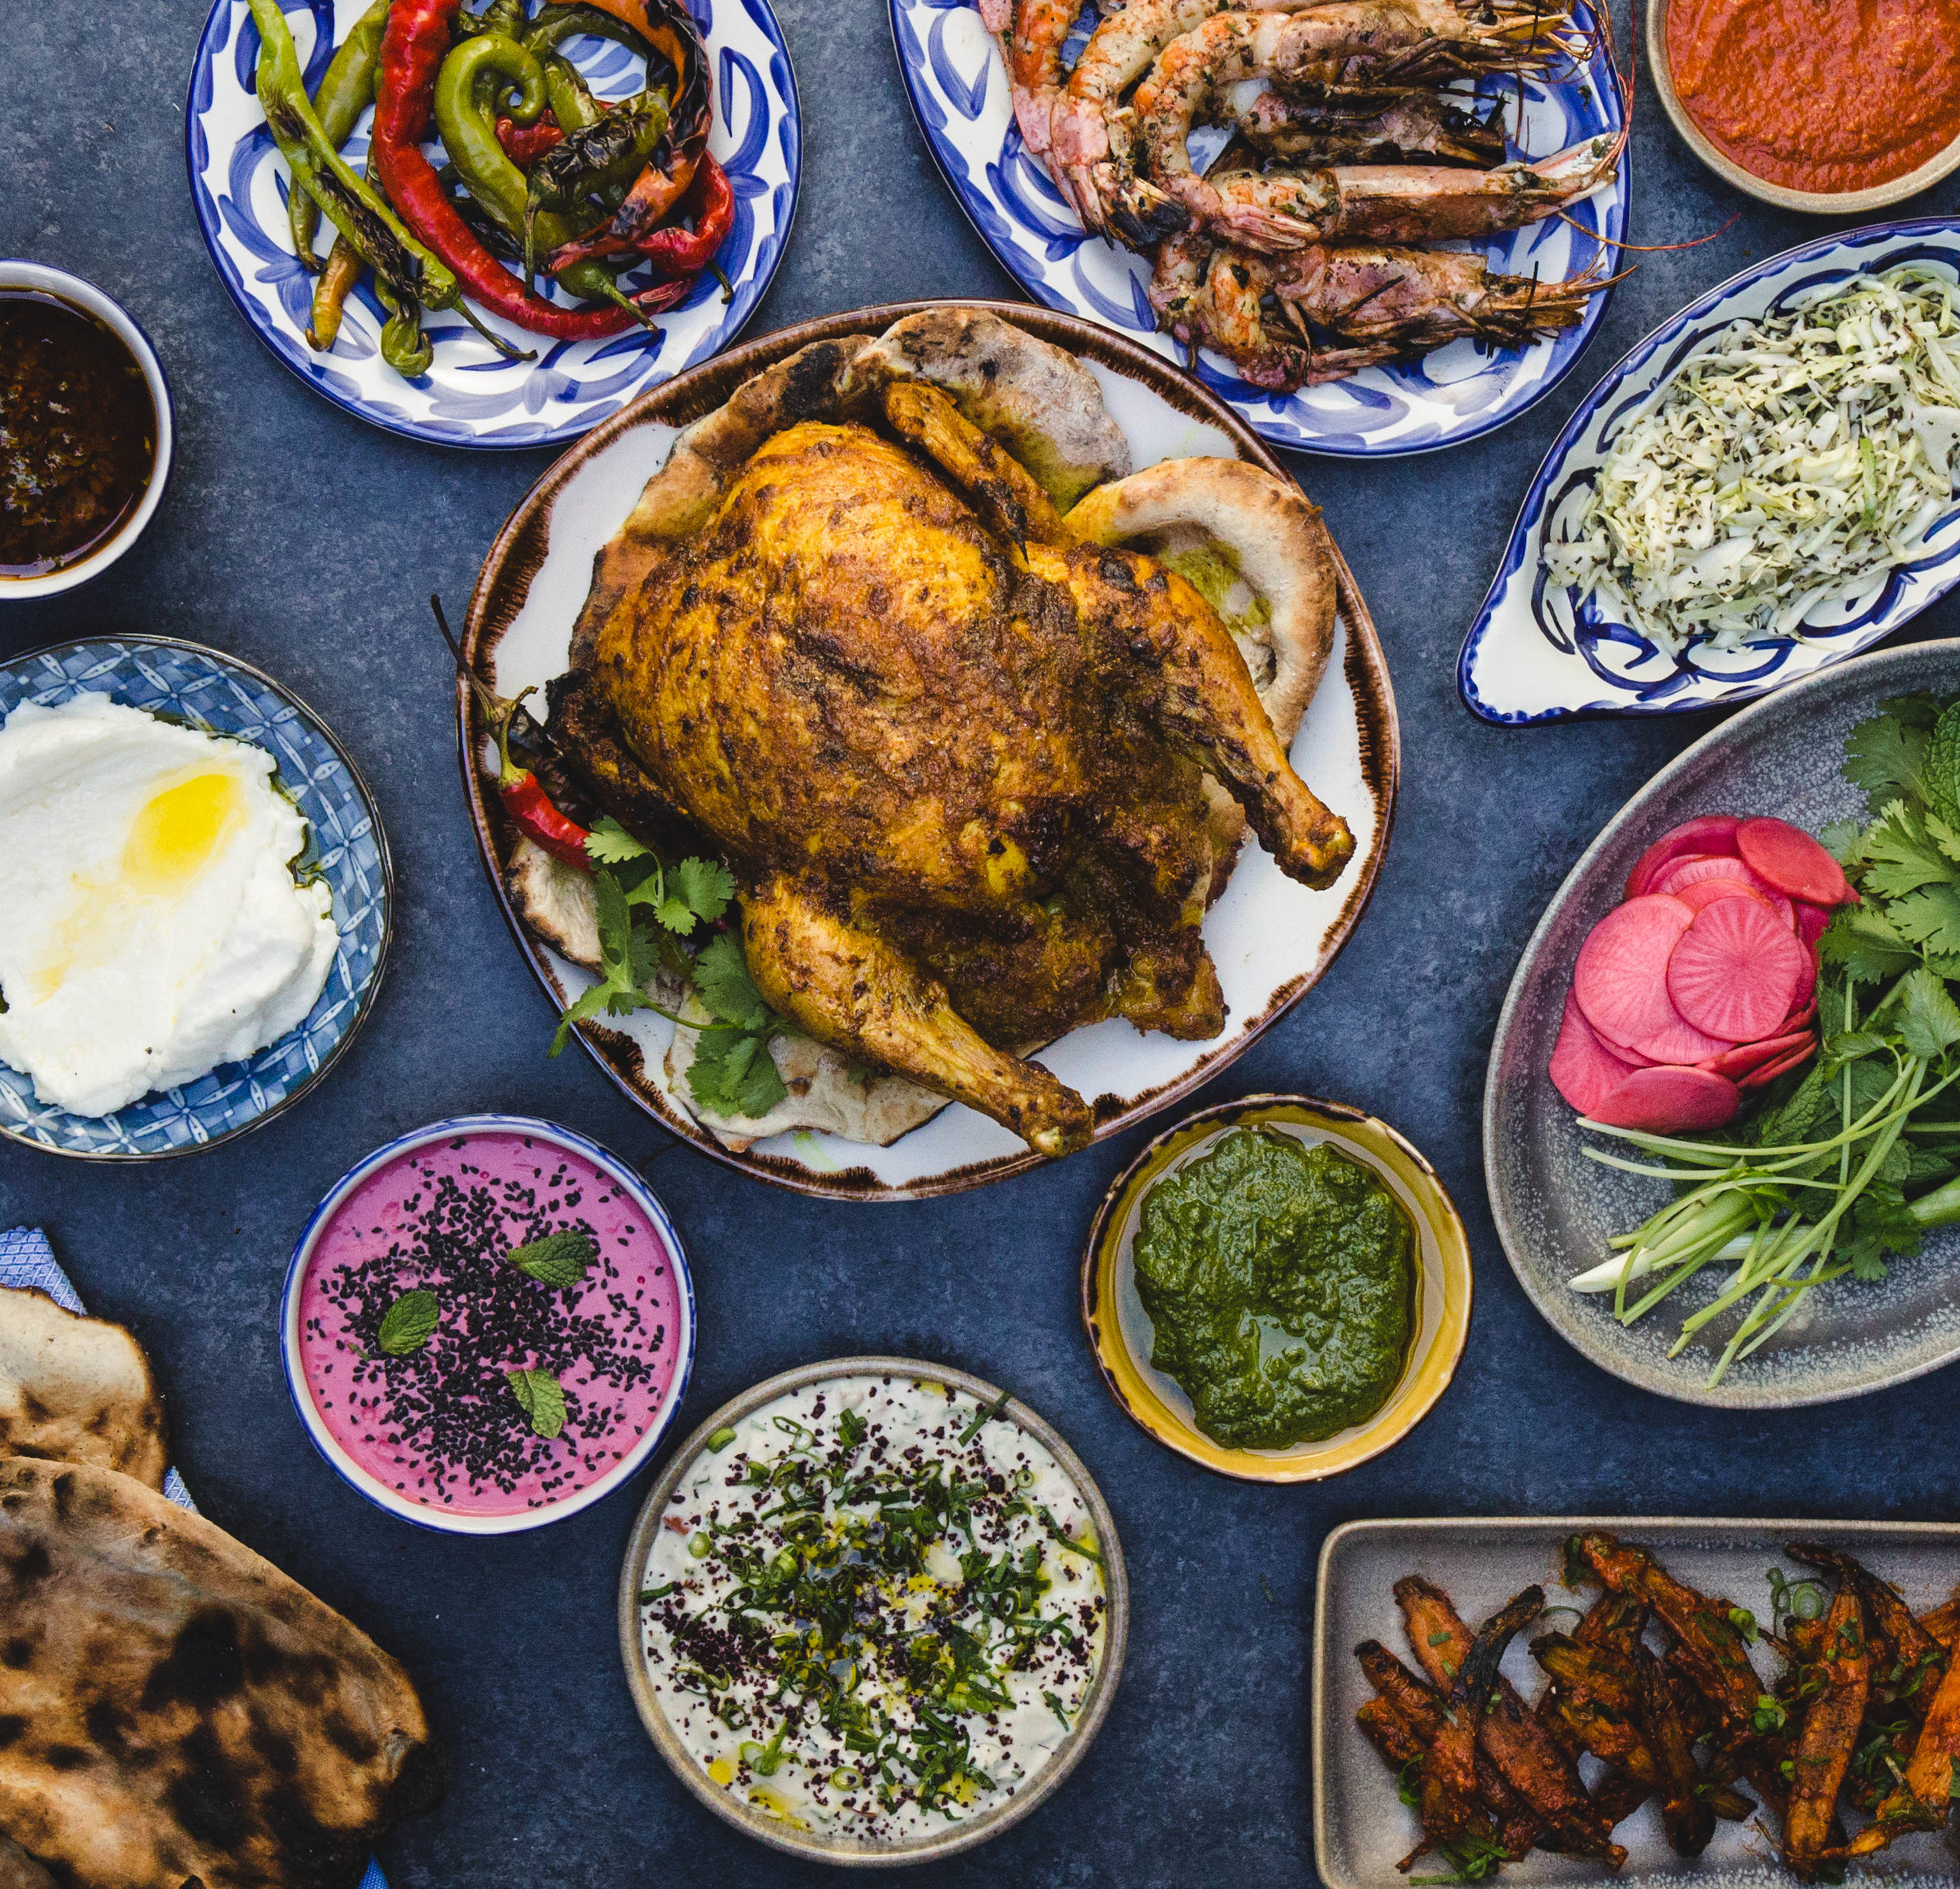 Food + Drink food plate dish meal different vegetarian food cuisine lunch fried food thanksgiving dinner many Seafood meze recipe asian food middle eastern food items vegetable dinner set various assortment arranged meat variety several